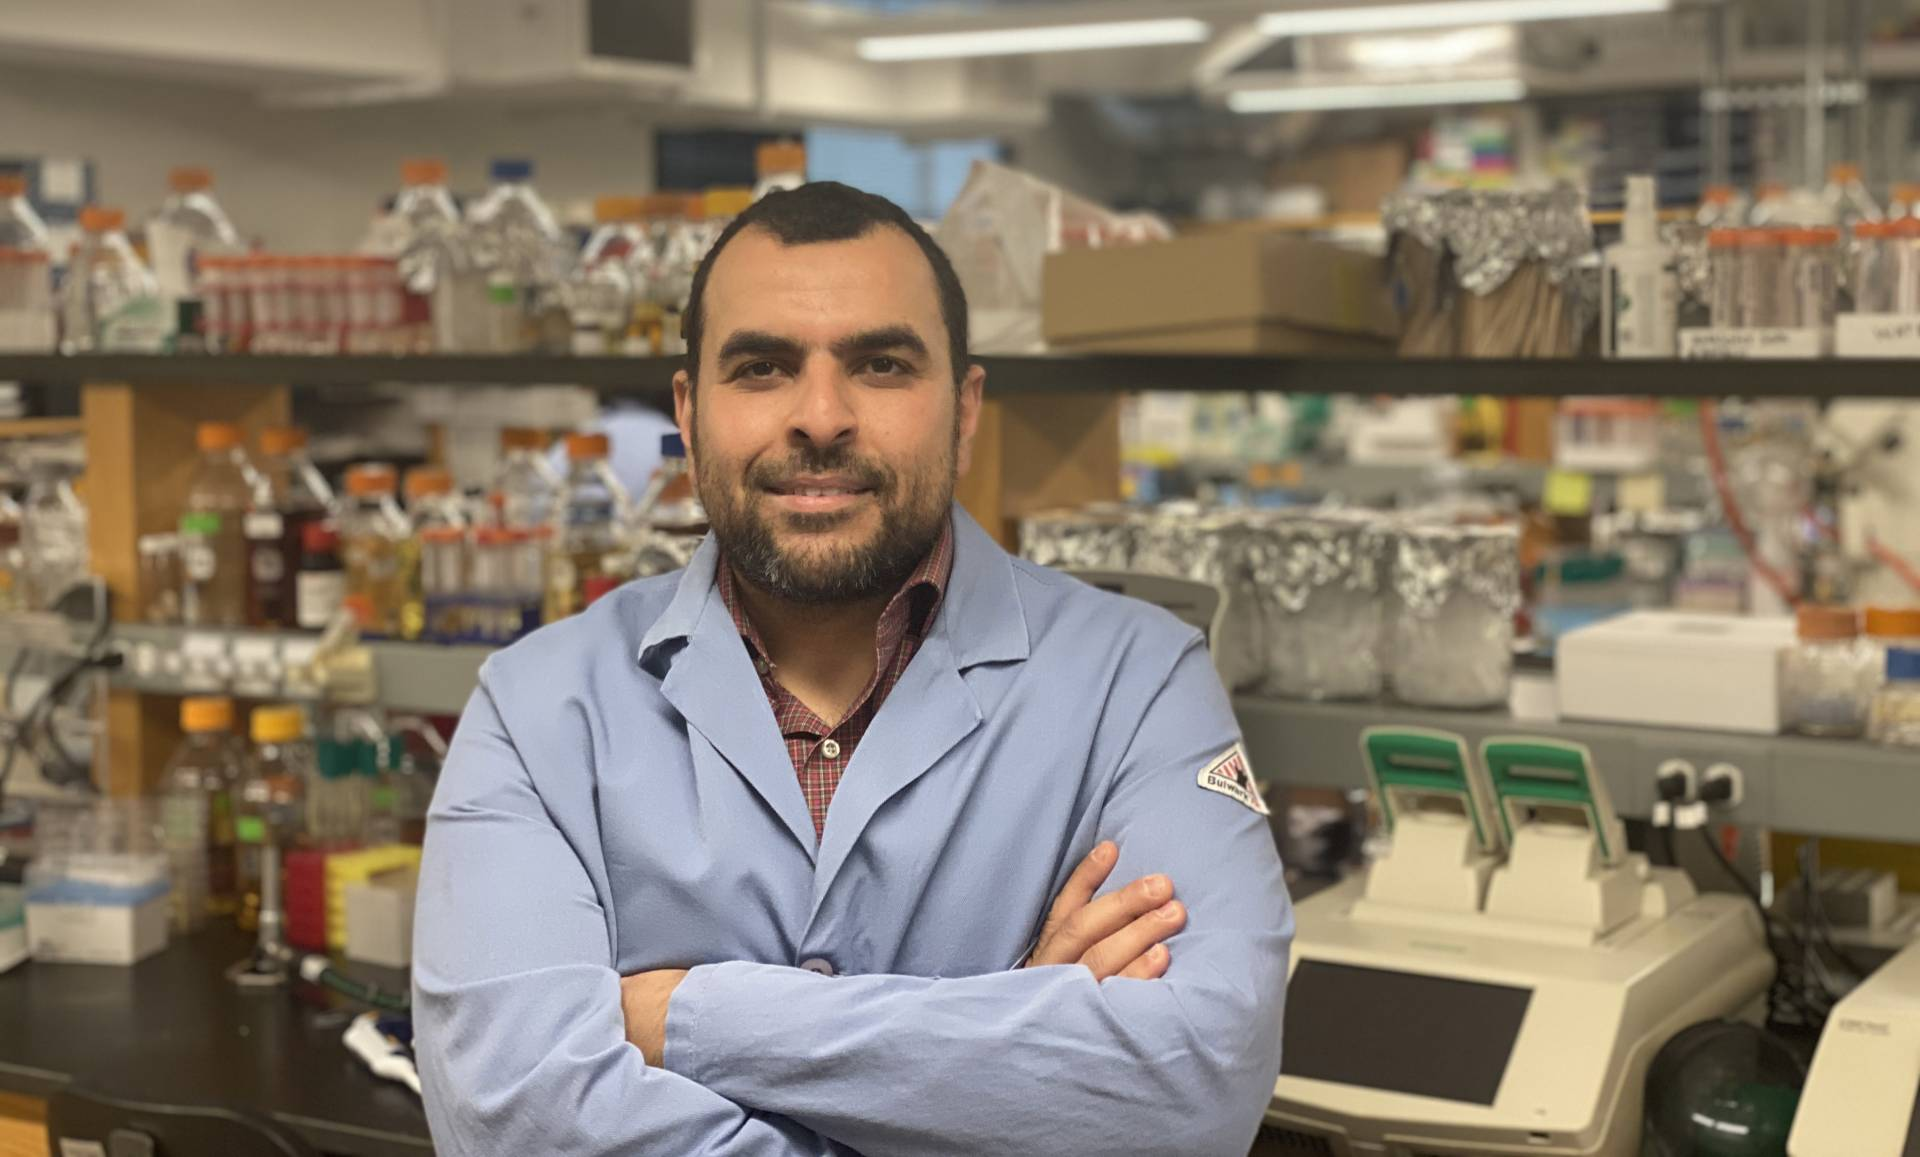 Mohamed Abou Donia in his lab